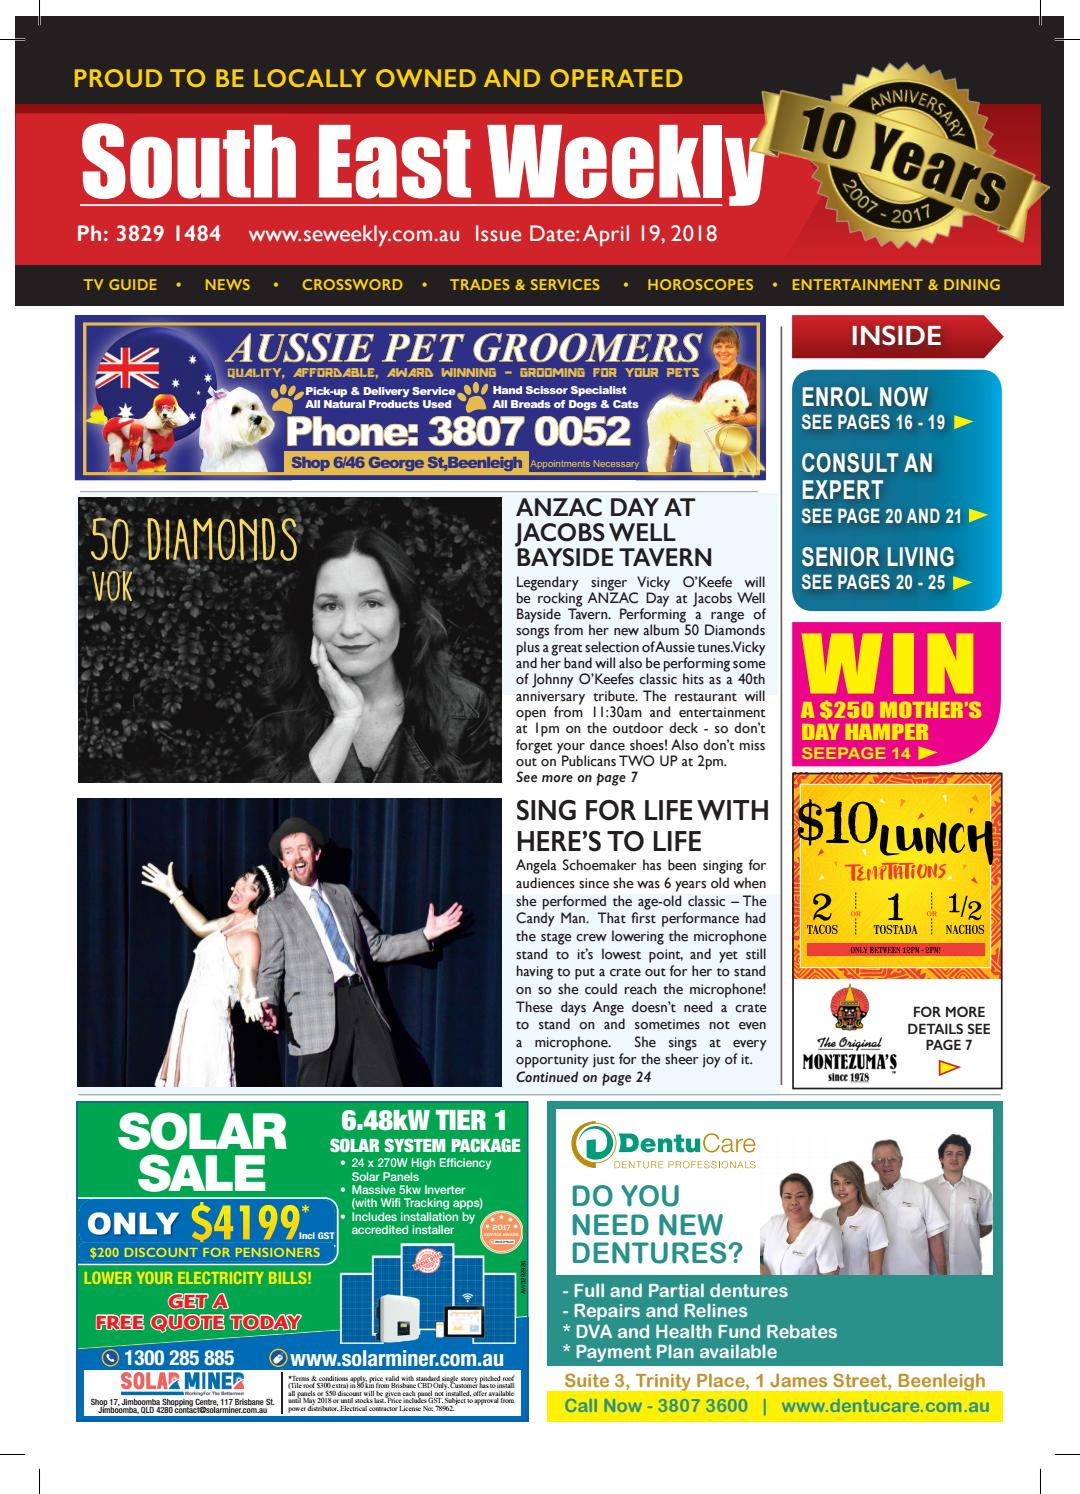 South East Weekly Magazine April 19 2018 by South East